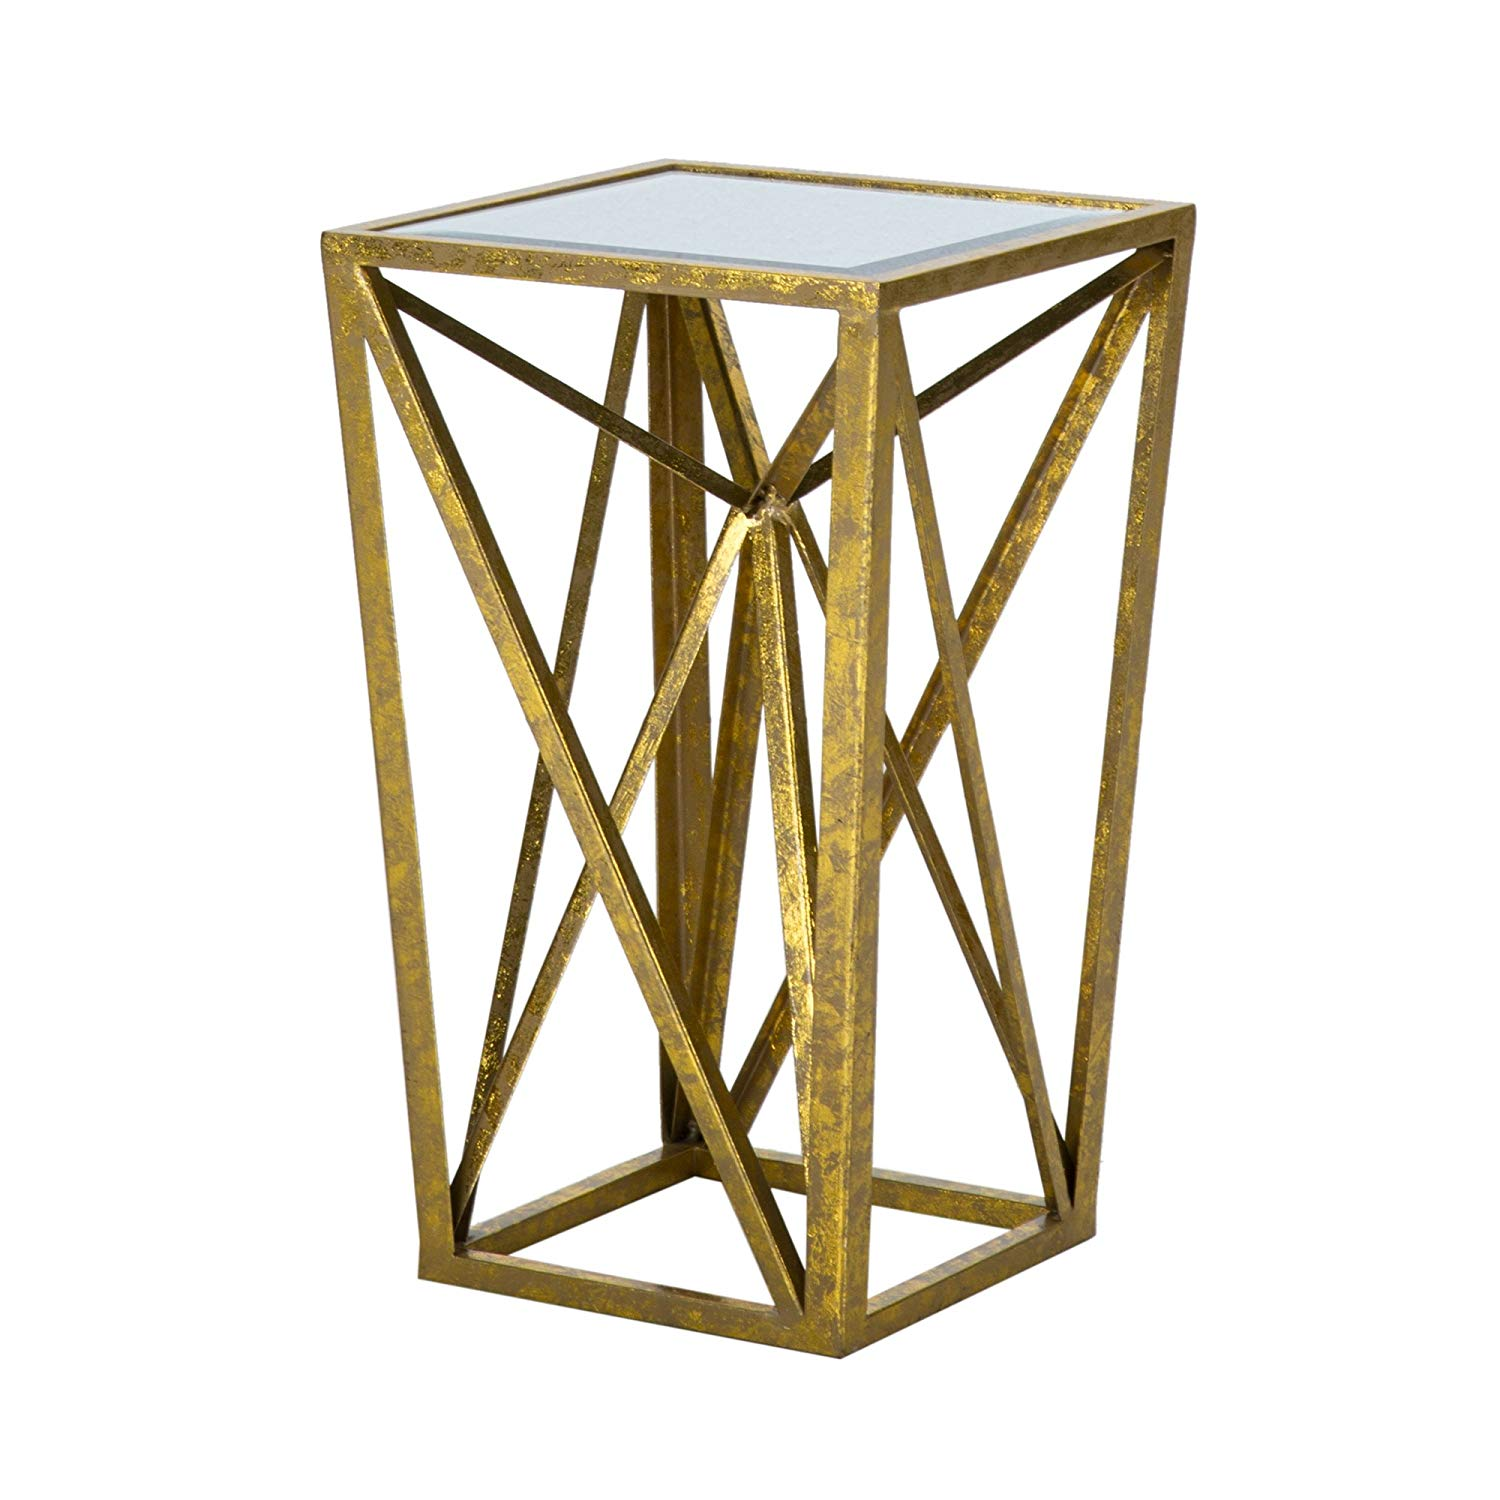 madison park zee accent tables mirror glass metal small triangle table side gold angular design modern style end piece top hollow round rectangular vintage dining black wood